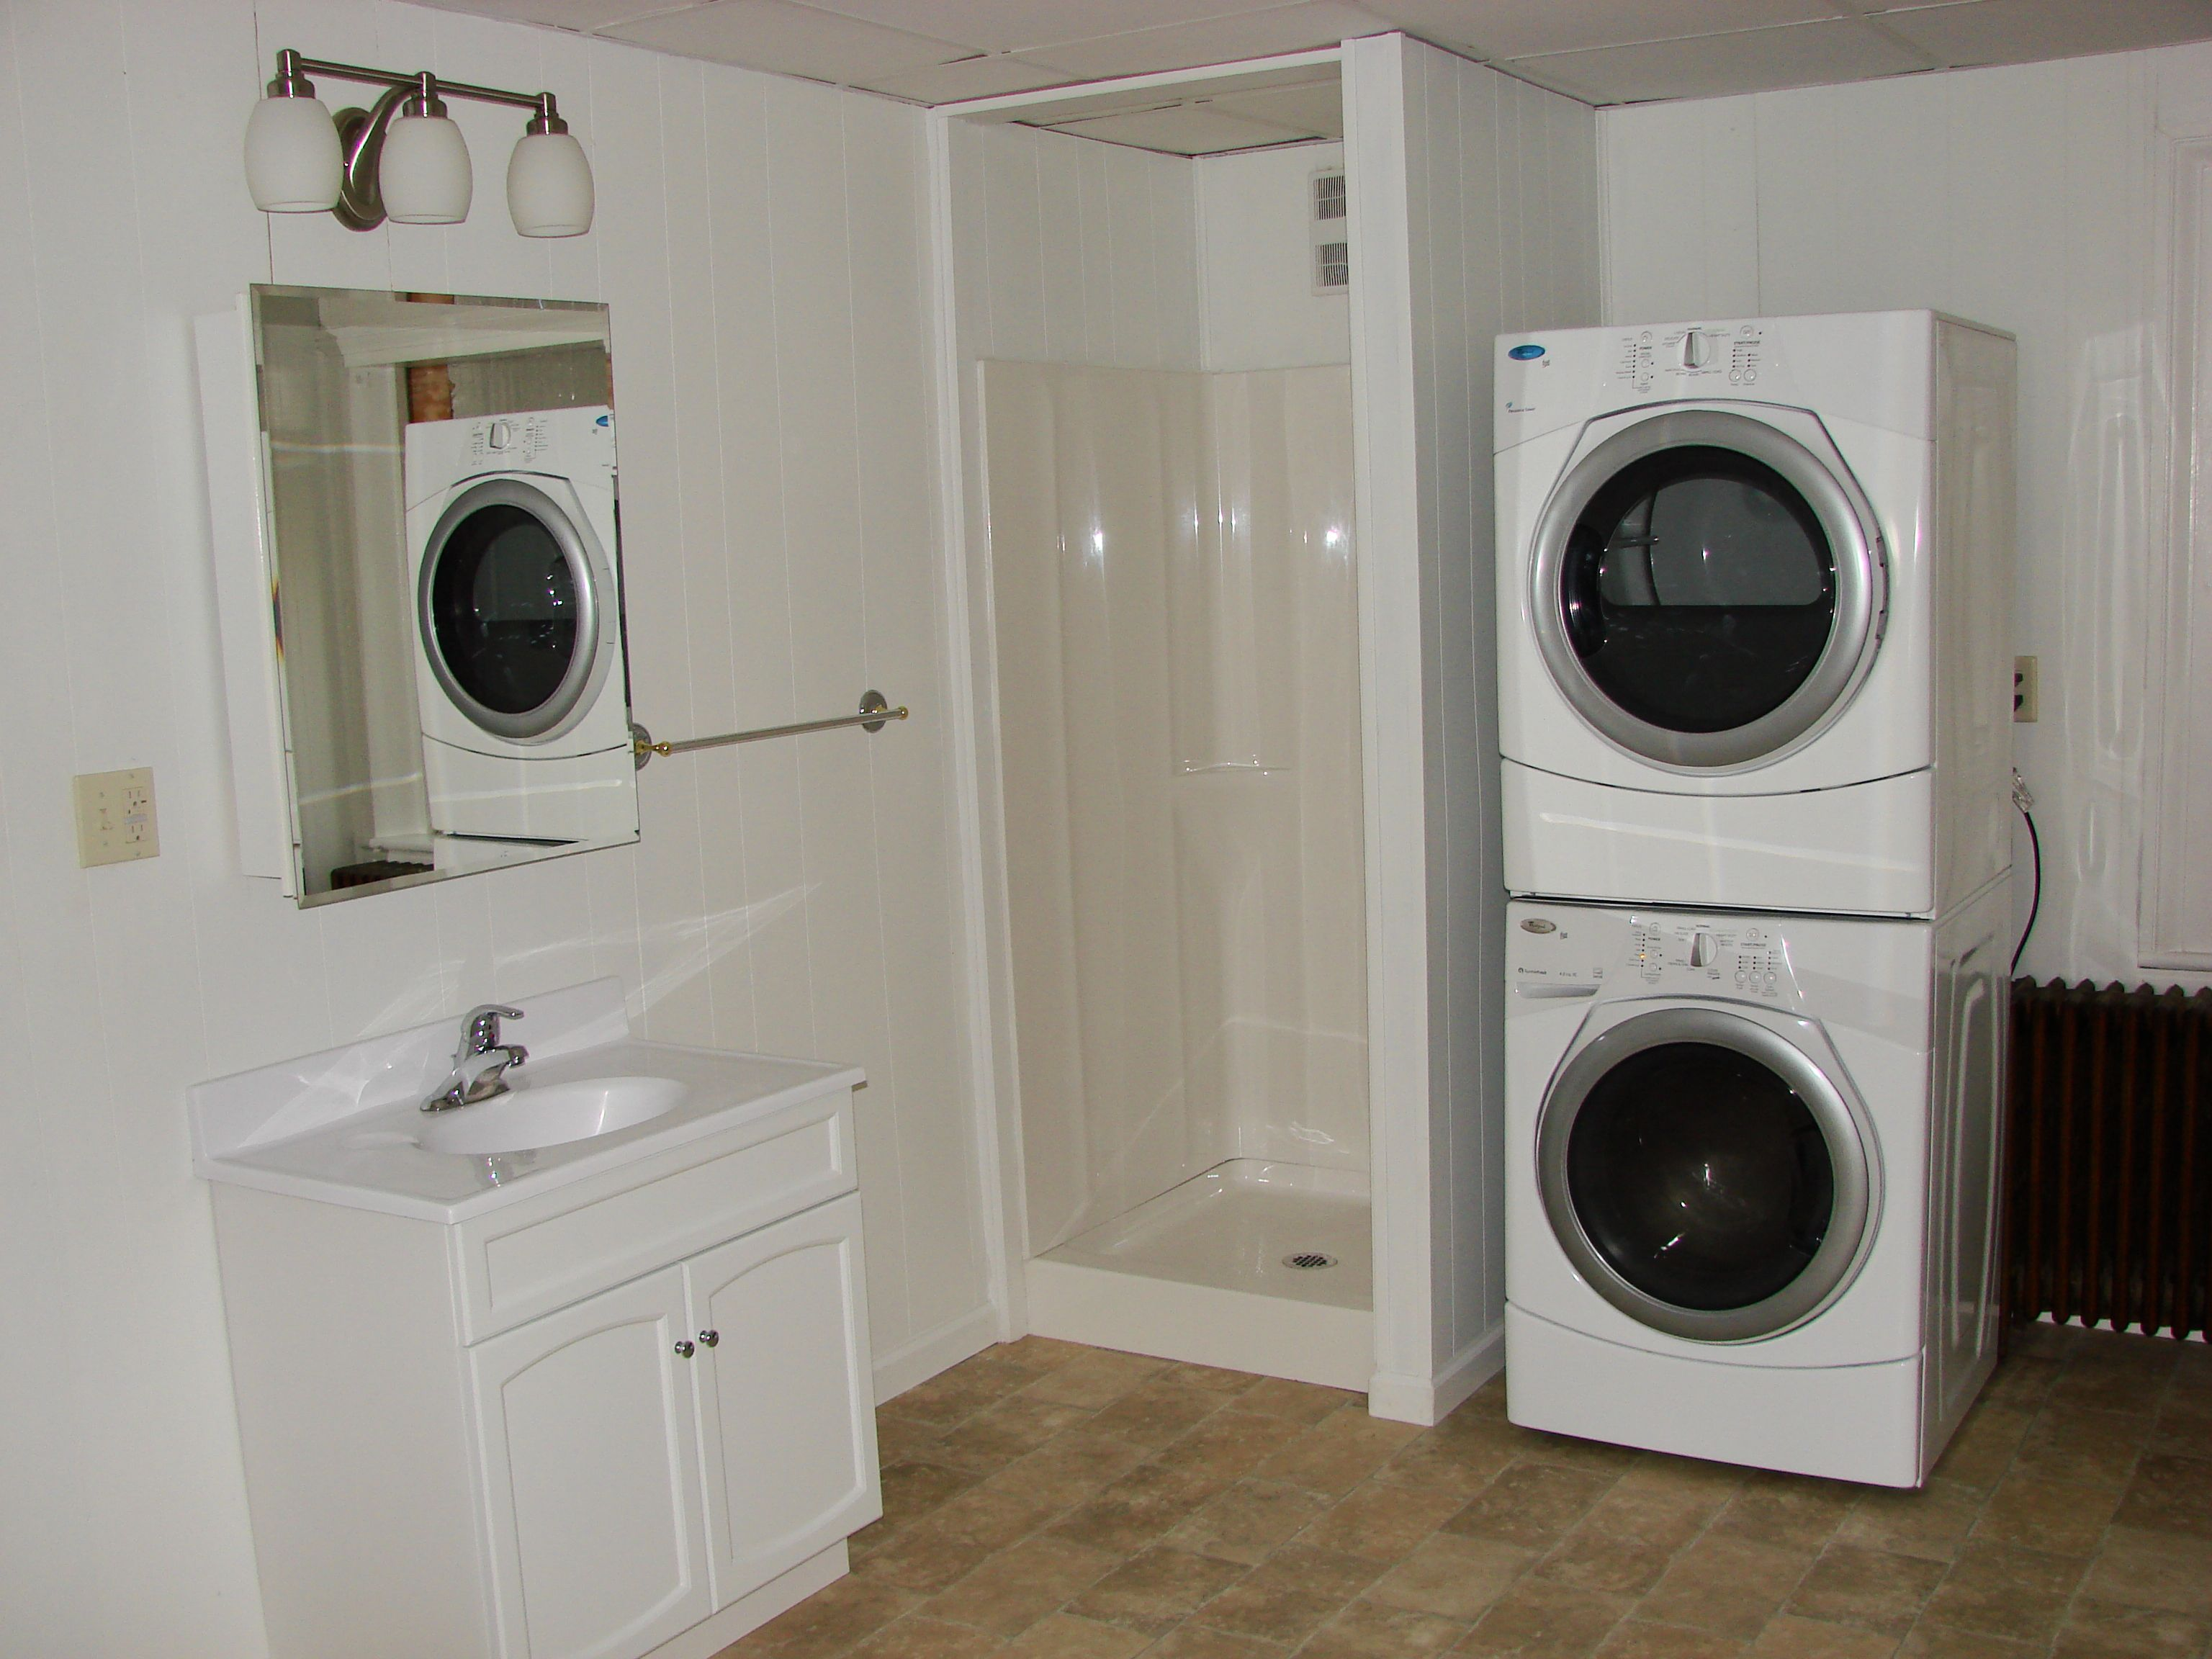 Cool White Wash Machine And Dry Machine On The Side Of ... on Small Space Small Bathroom Ideas With Washing Machine id=44519